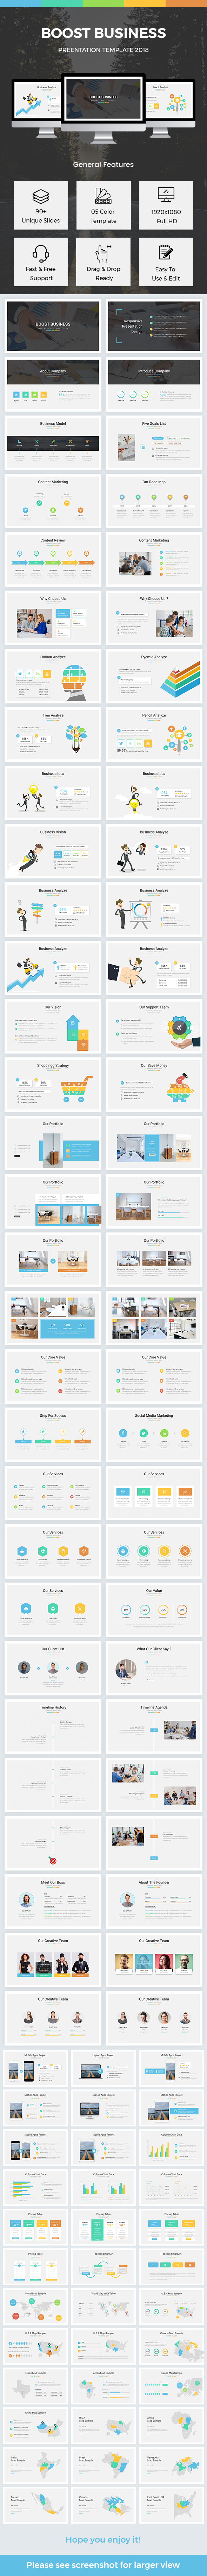 Boost Business Keynote Template 2018 - Business Keynote Templates